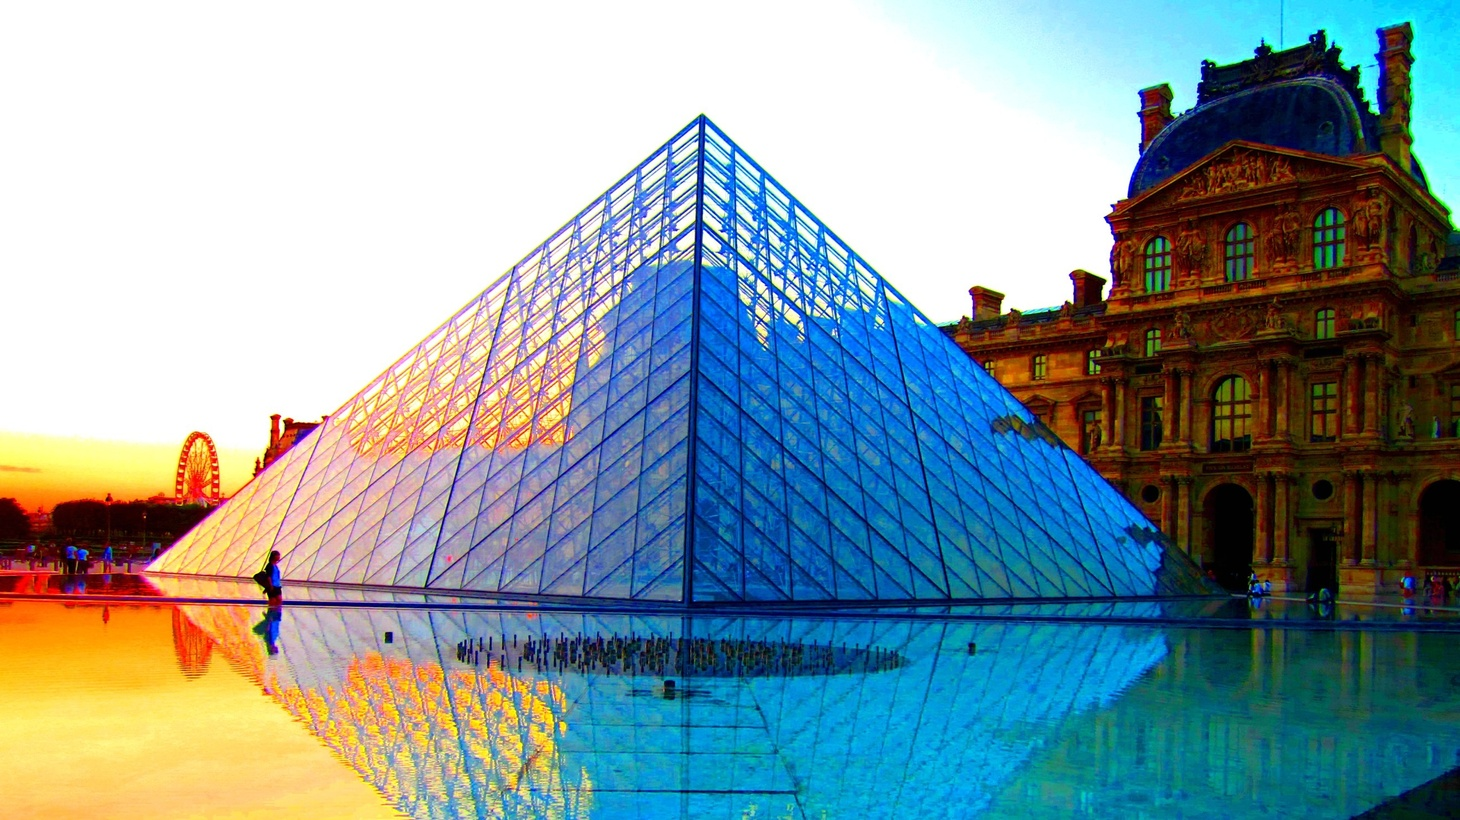 The Louvre Pyramid, designed by architect I.M. Pei.